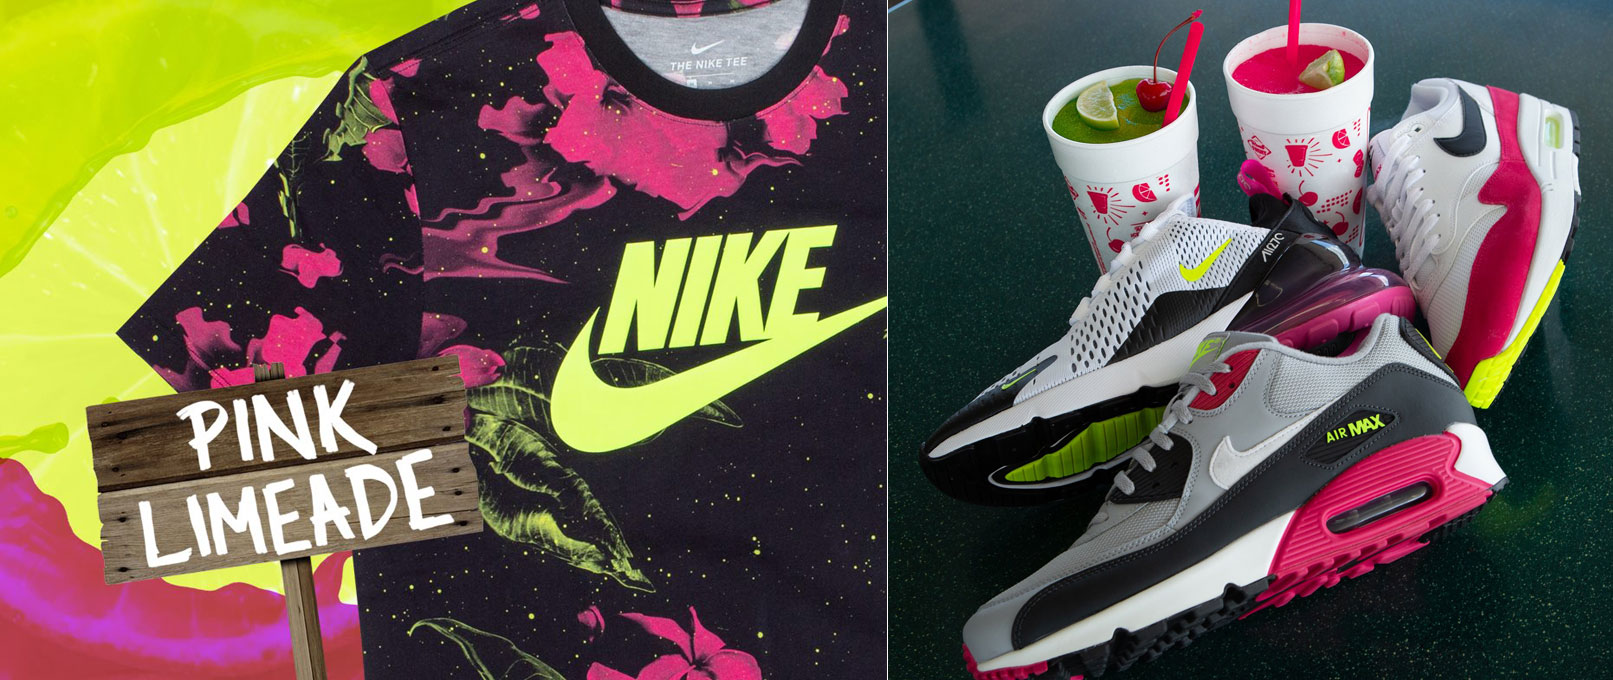 nike-pink-limeaid-shoes-clothing